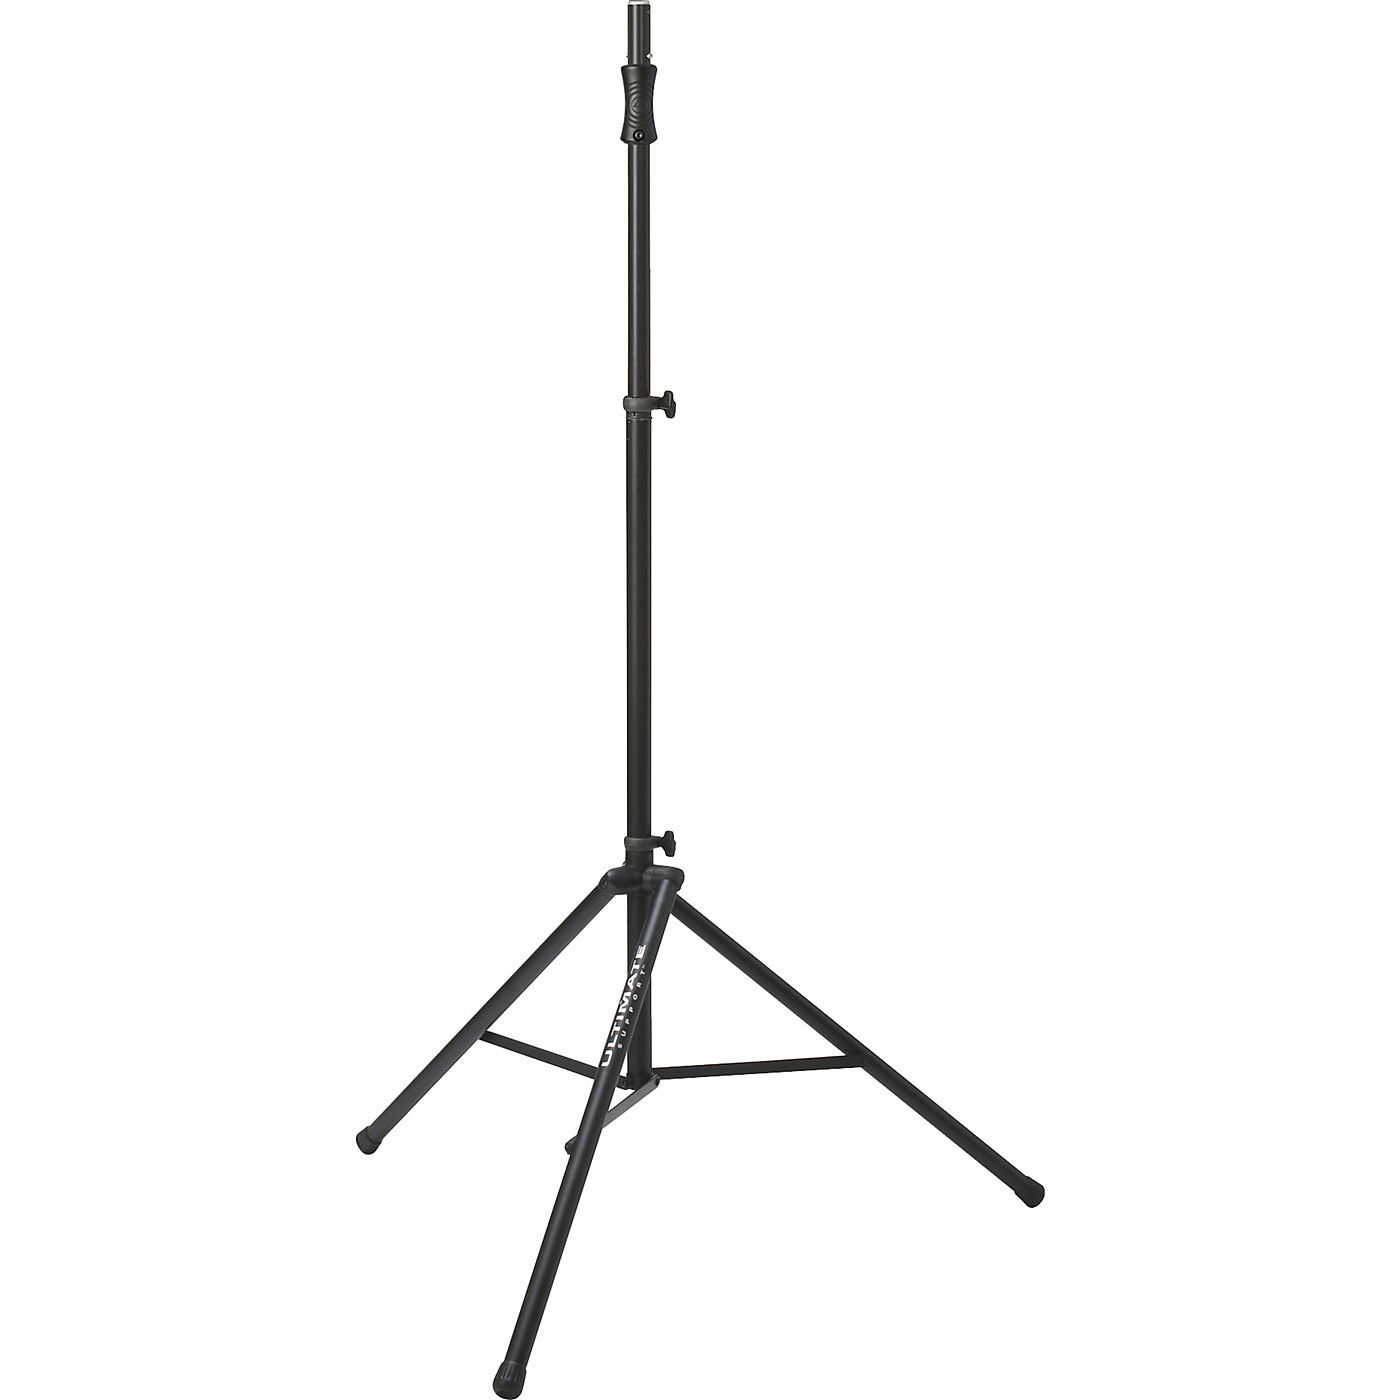 Ultimate Support Ultimate Support TS-110B Air Lift Speaker Stand thumbnail